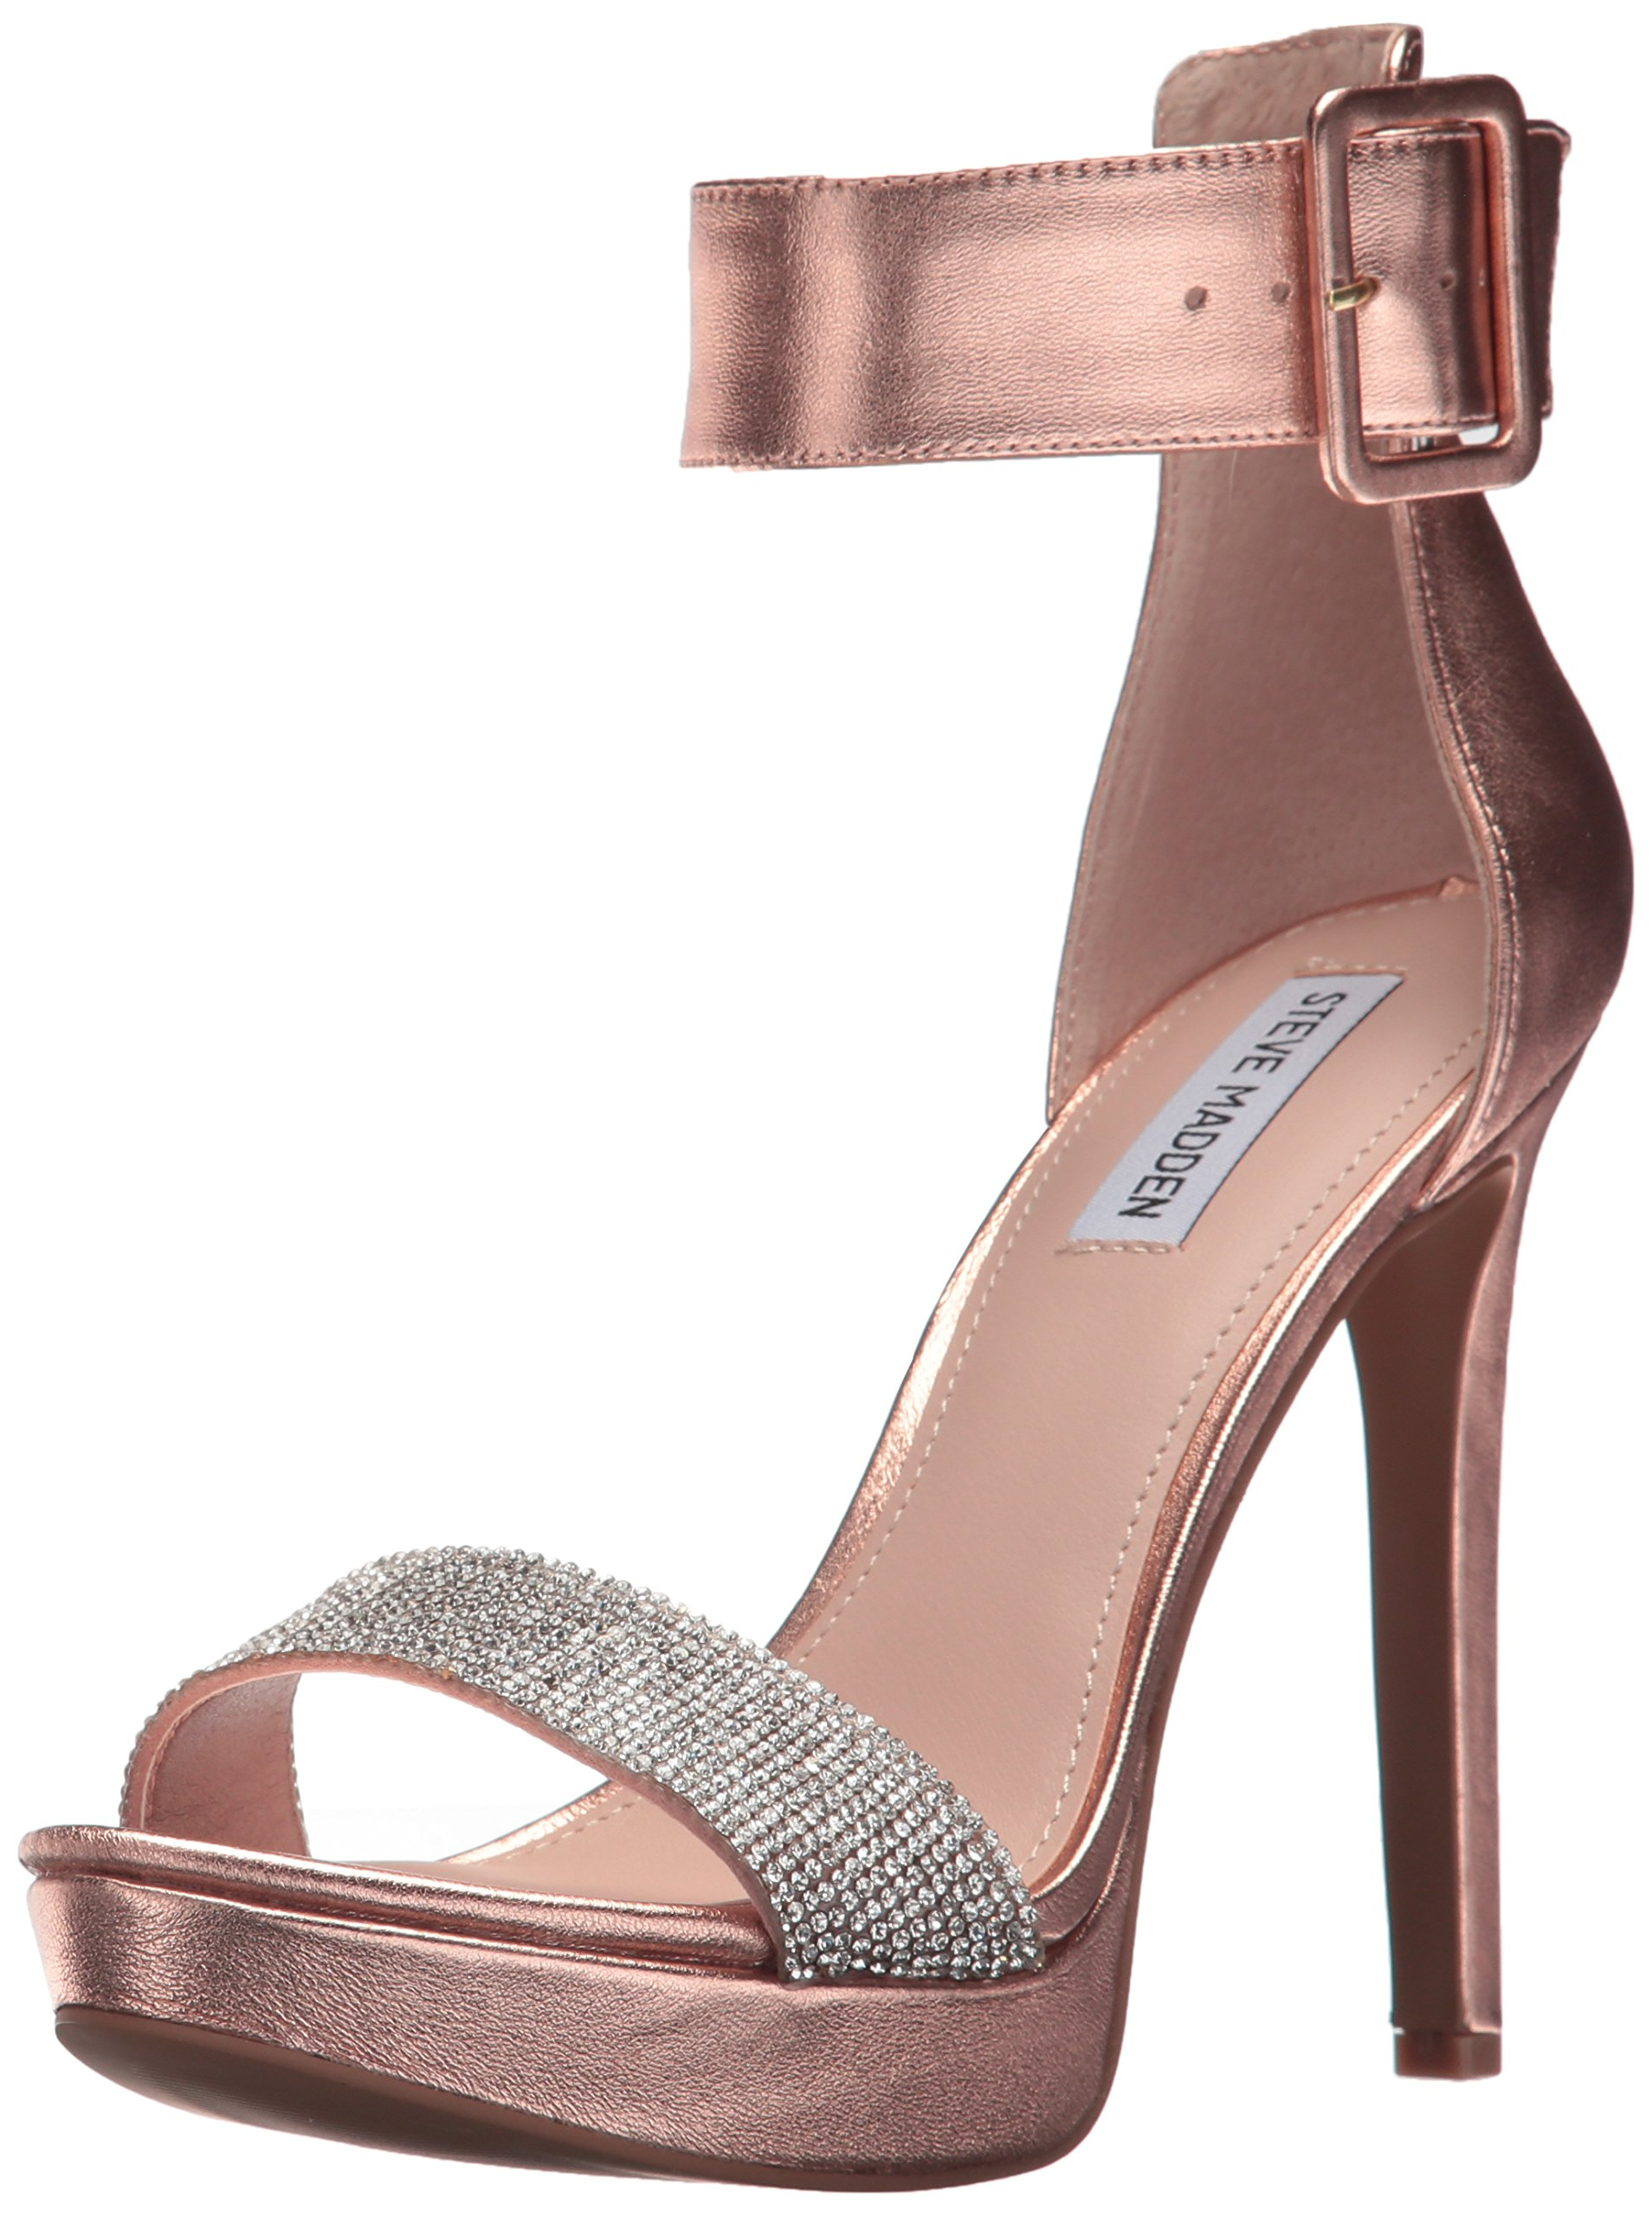 Steve Madden Women's Circuit-R Heeled Sandal, Rose Gold, 10 M US